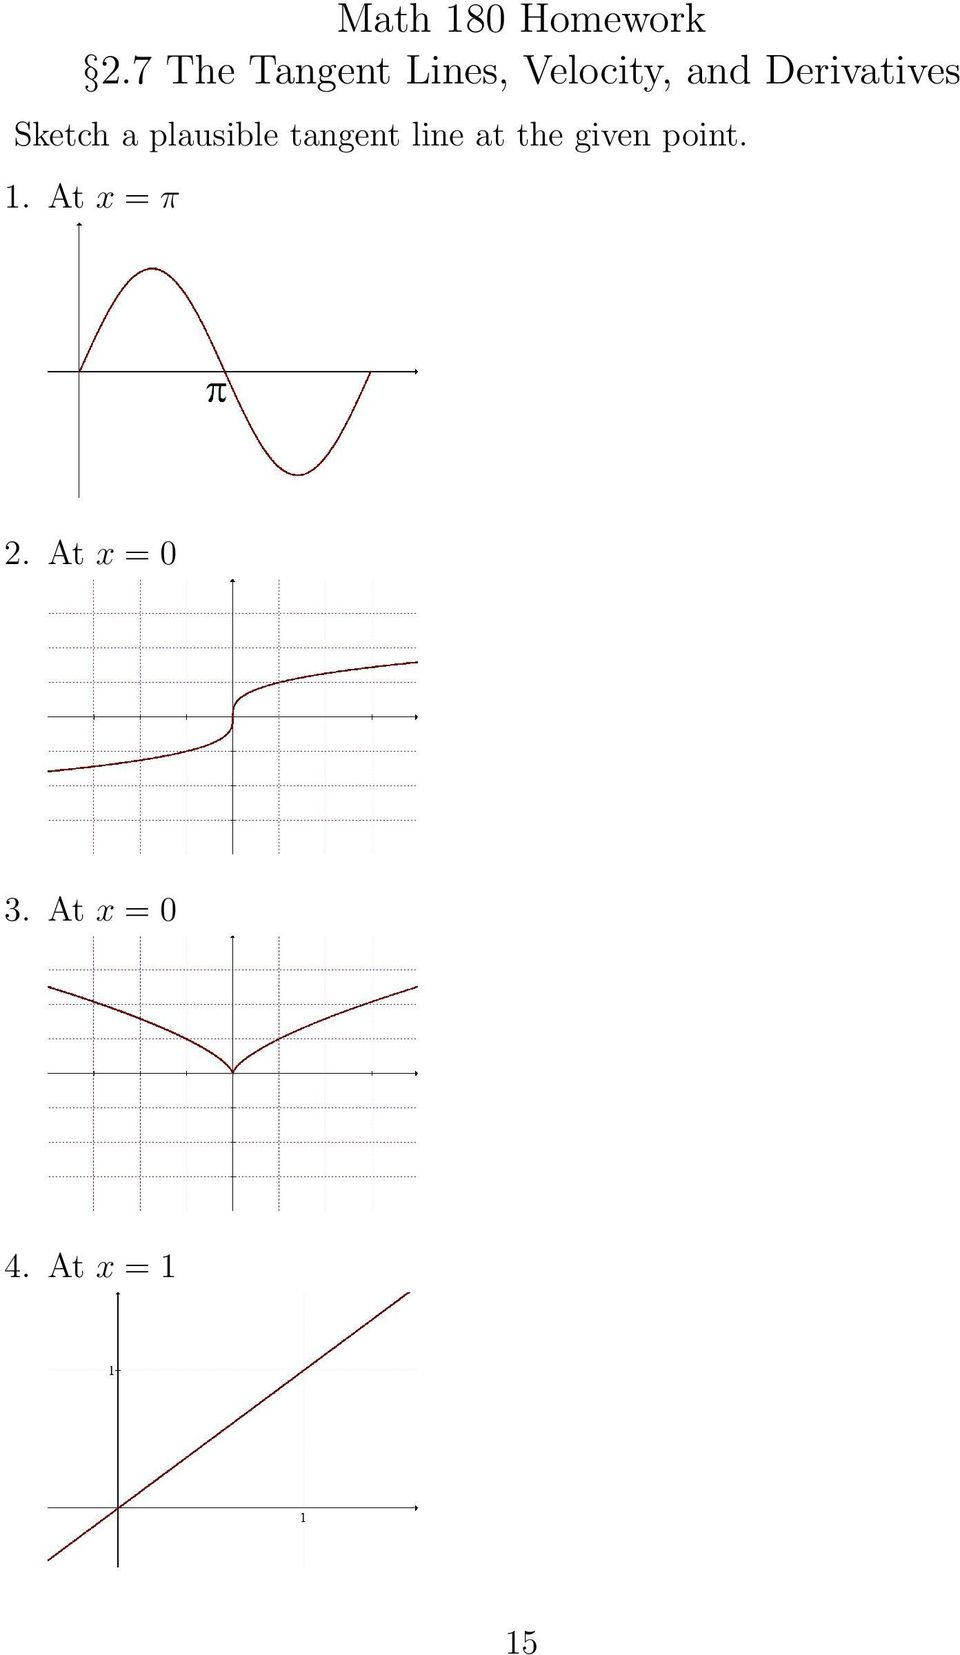 Derivatives Sketc a plausible tangent